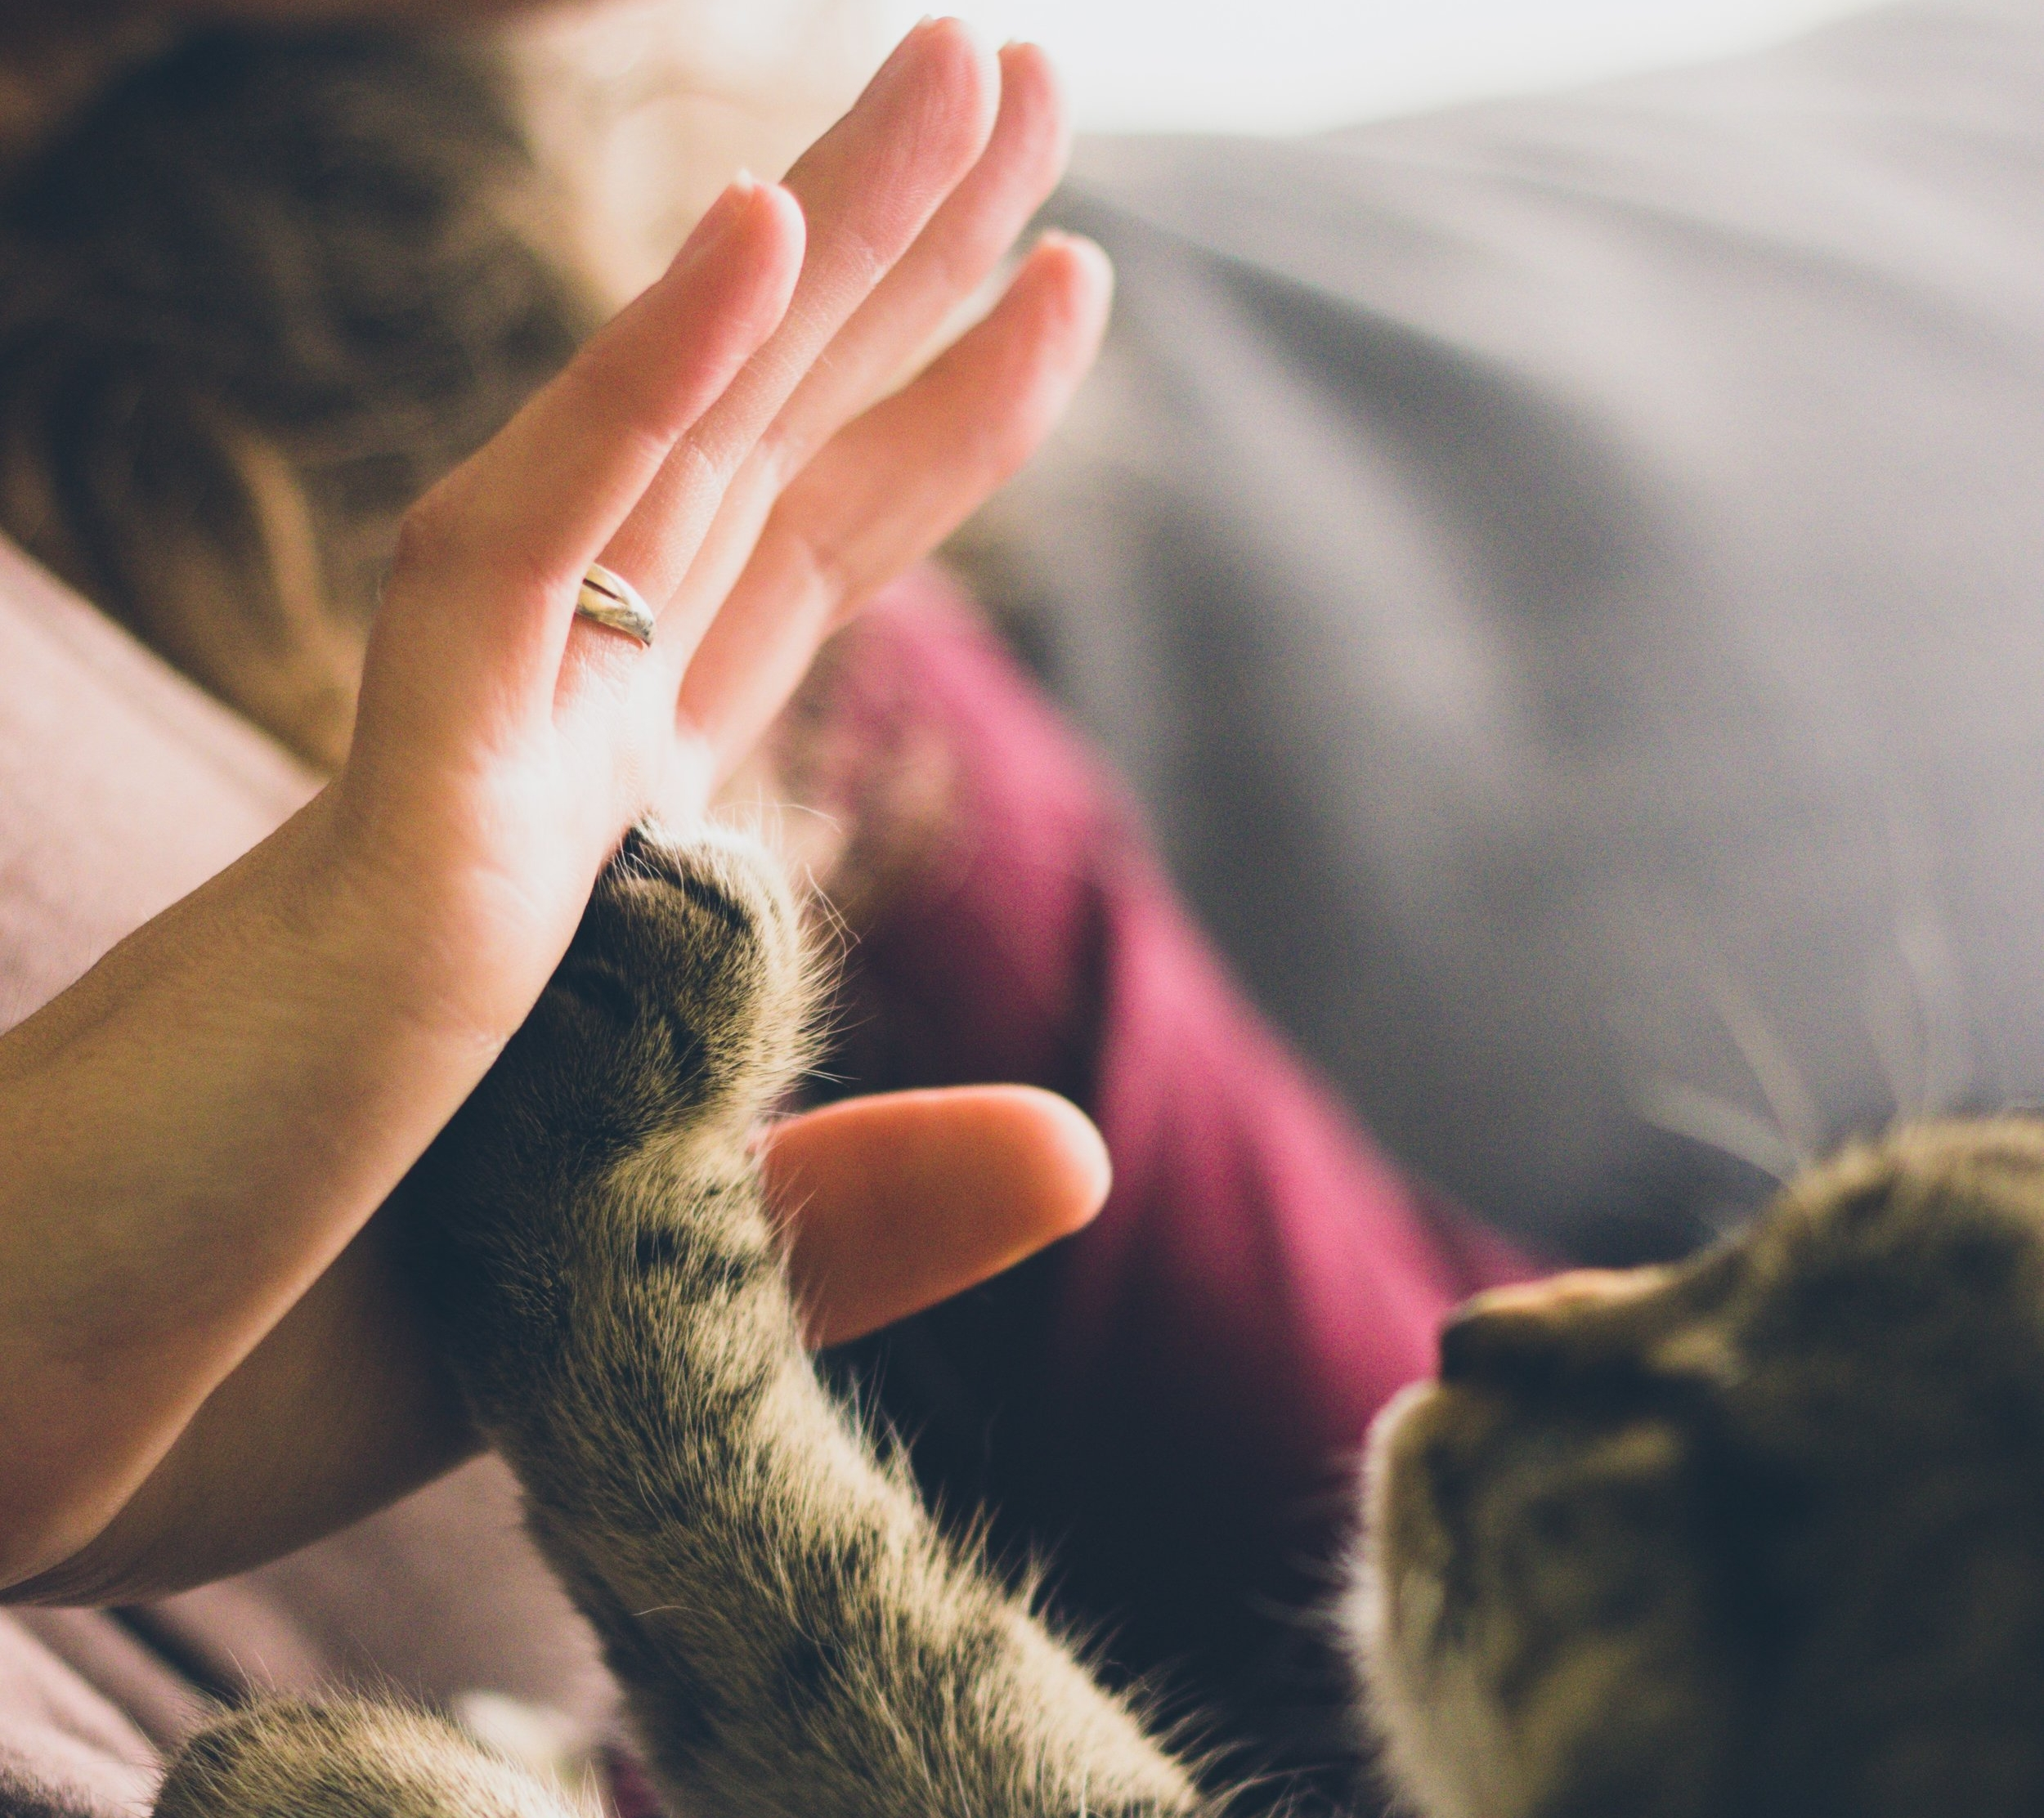 Yes, high-fiving your cat counts as a silly celebration.